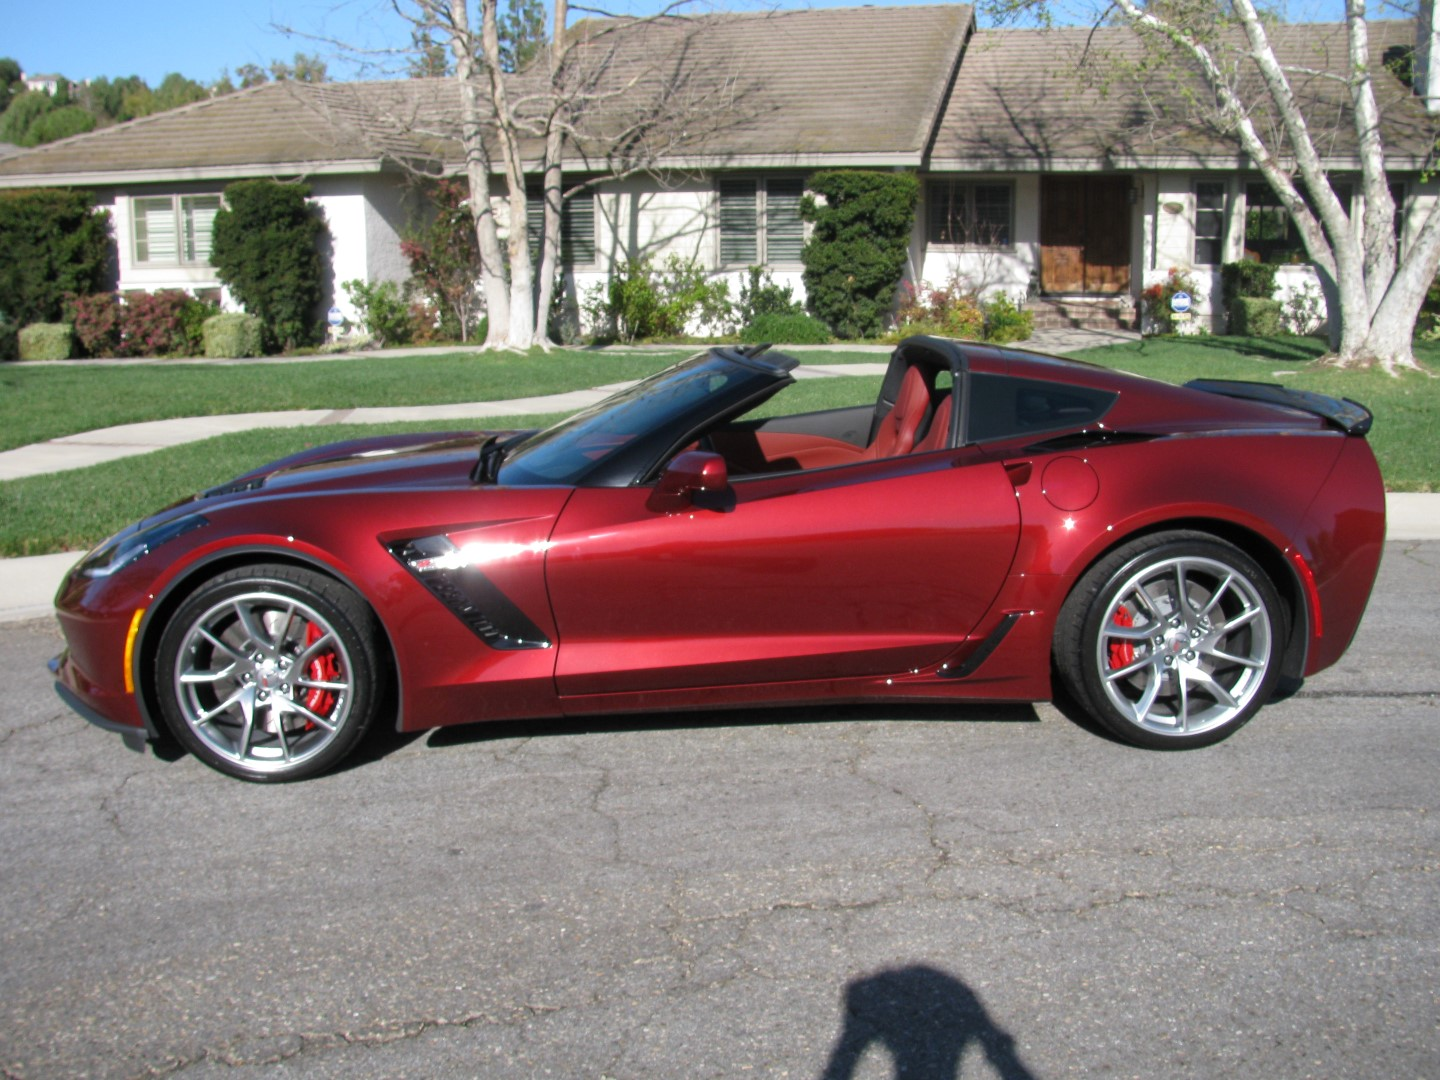 name img_7656 largejpg views 1141 size 3803 kb - 2016 Corvette Stingray And Z06 Spice Red Design Package